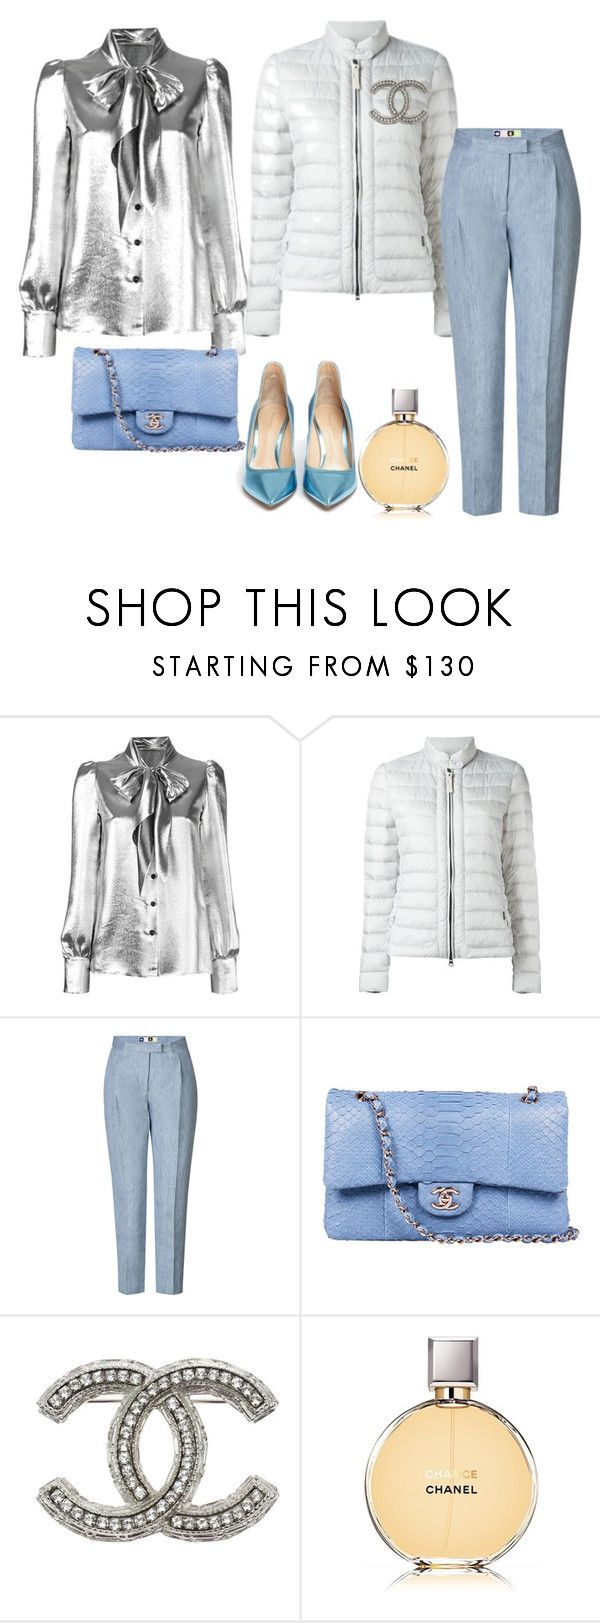 """BLUE ICE"" by katya-ukraine on Polyvore featuring мода, Yves Saint Laurent, Woolrich, MSGM, Chanel и Gianvito Rossi"